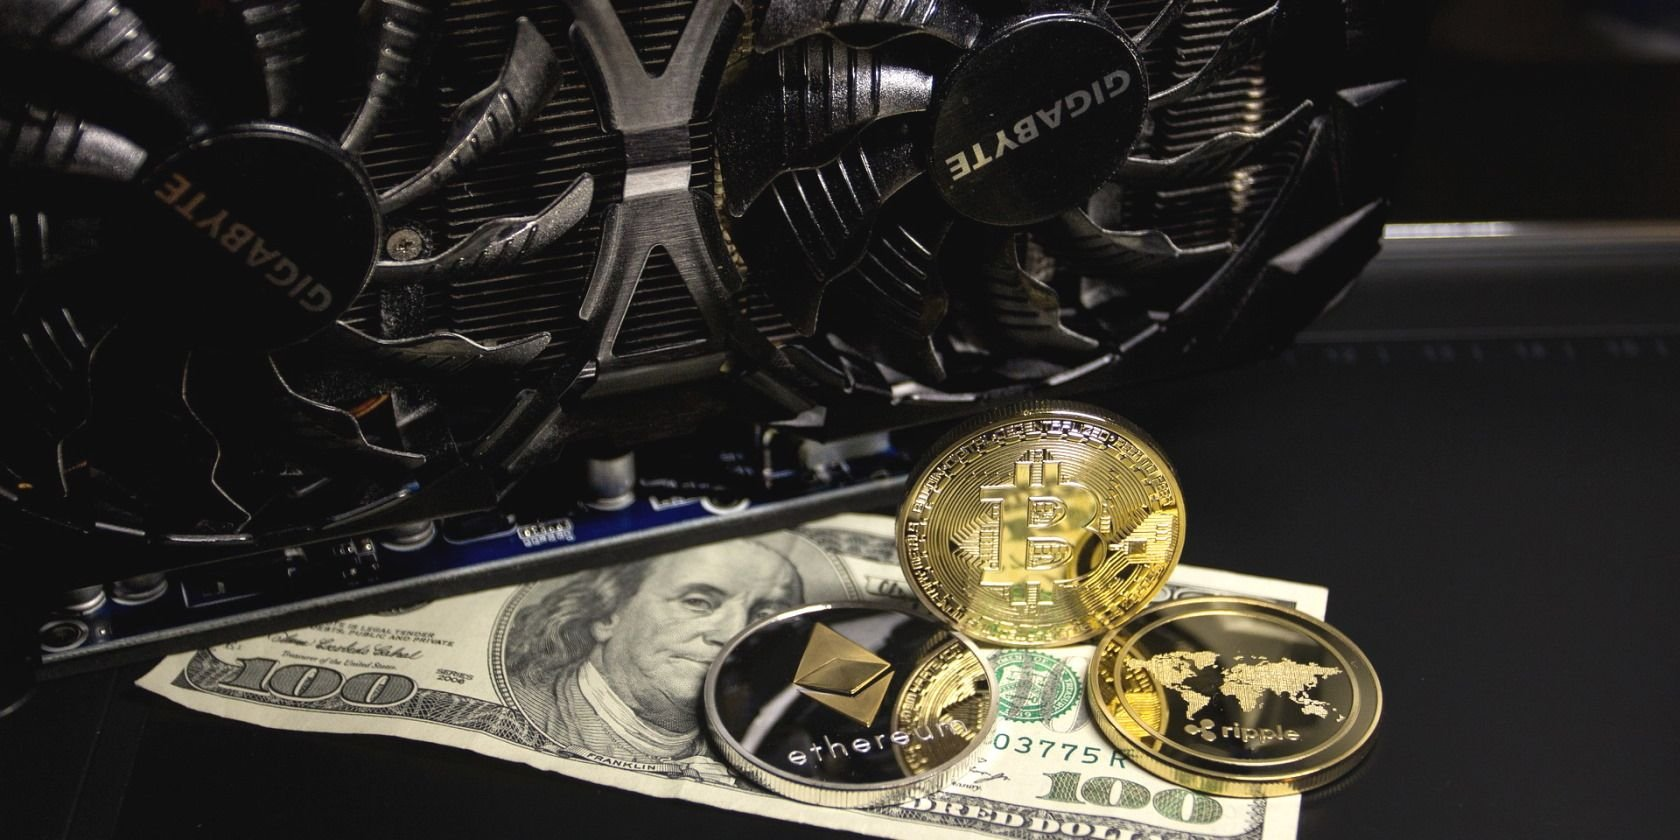 What Are Non-fungible Tokens and Why Are Graphics Cards So Expensive?